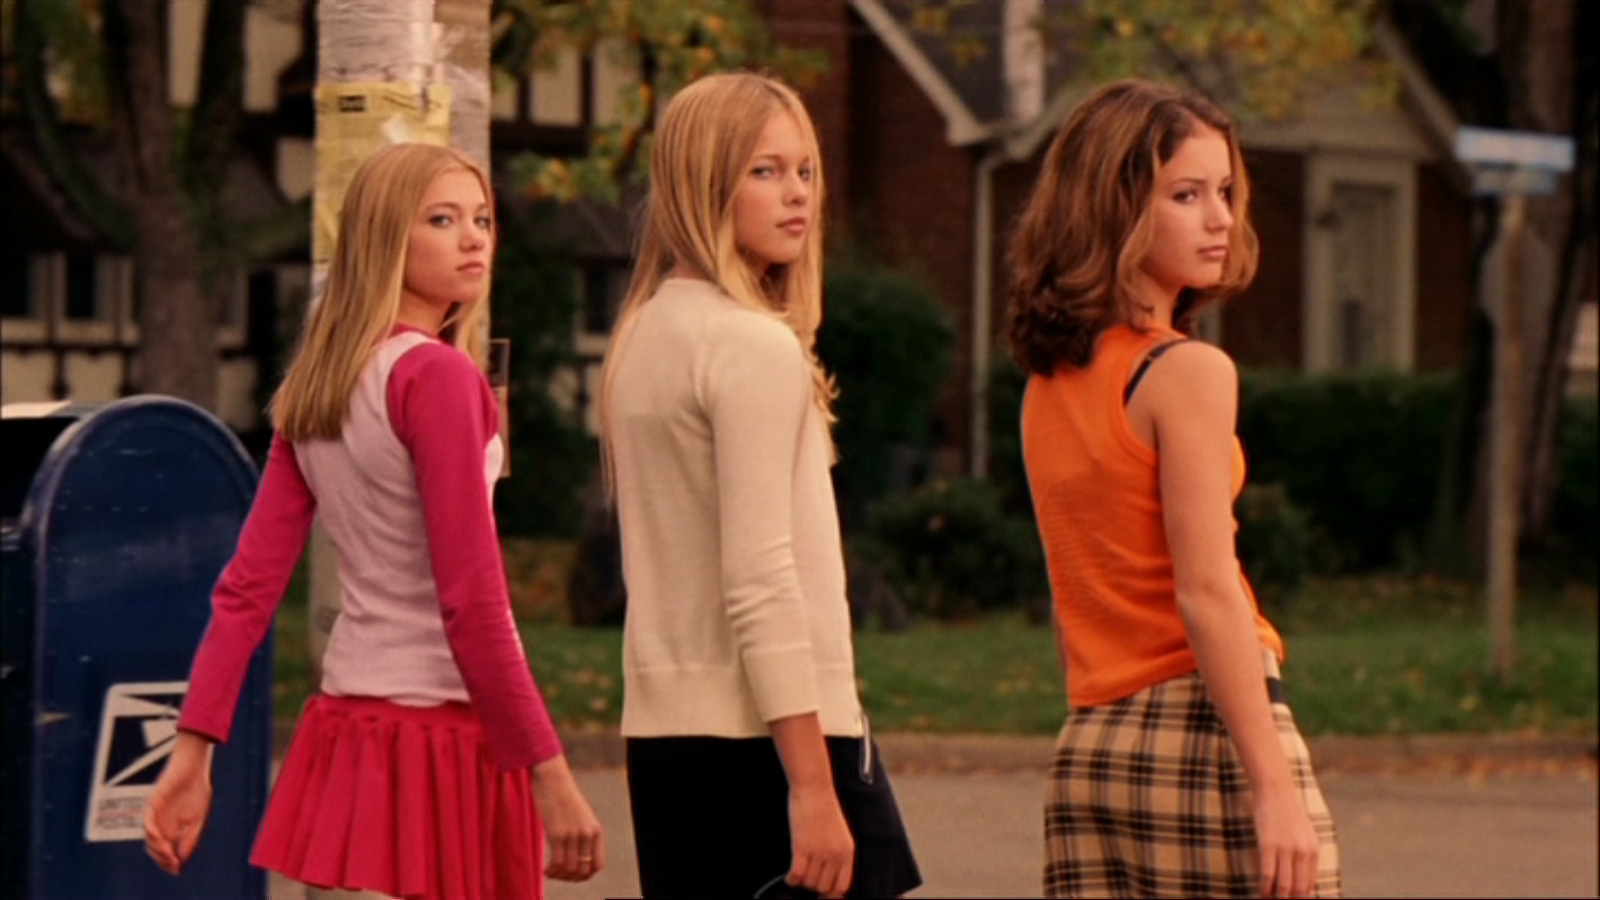 reasons collaboration among women is far better than competition  mean girls